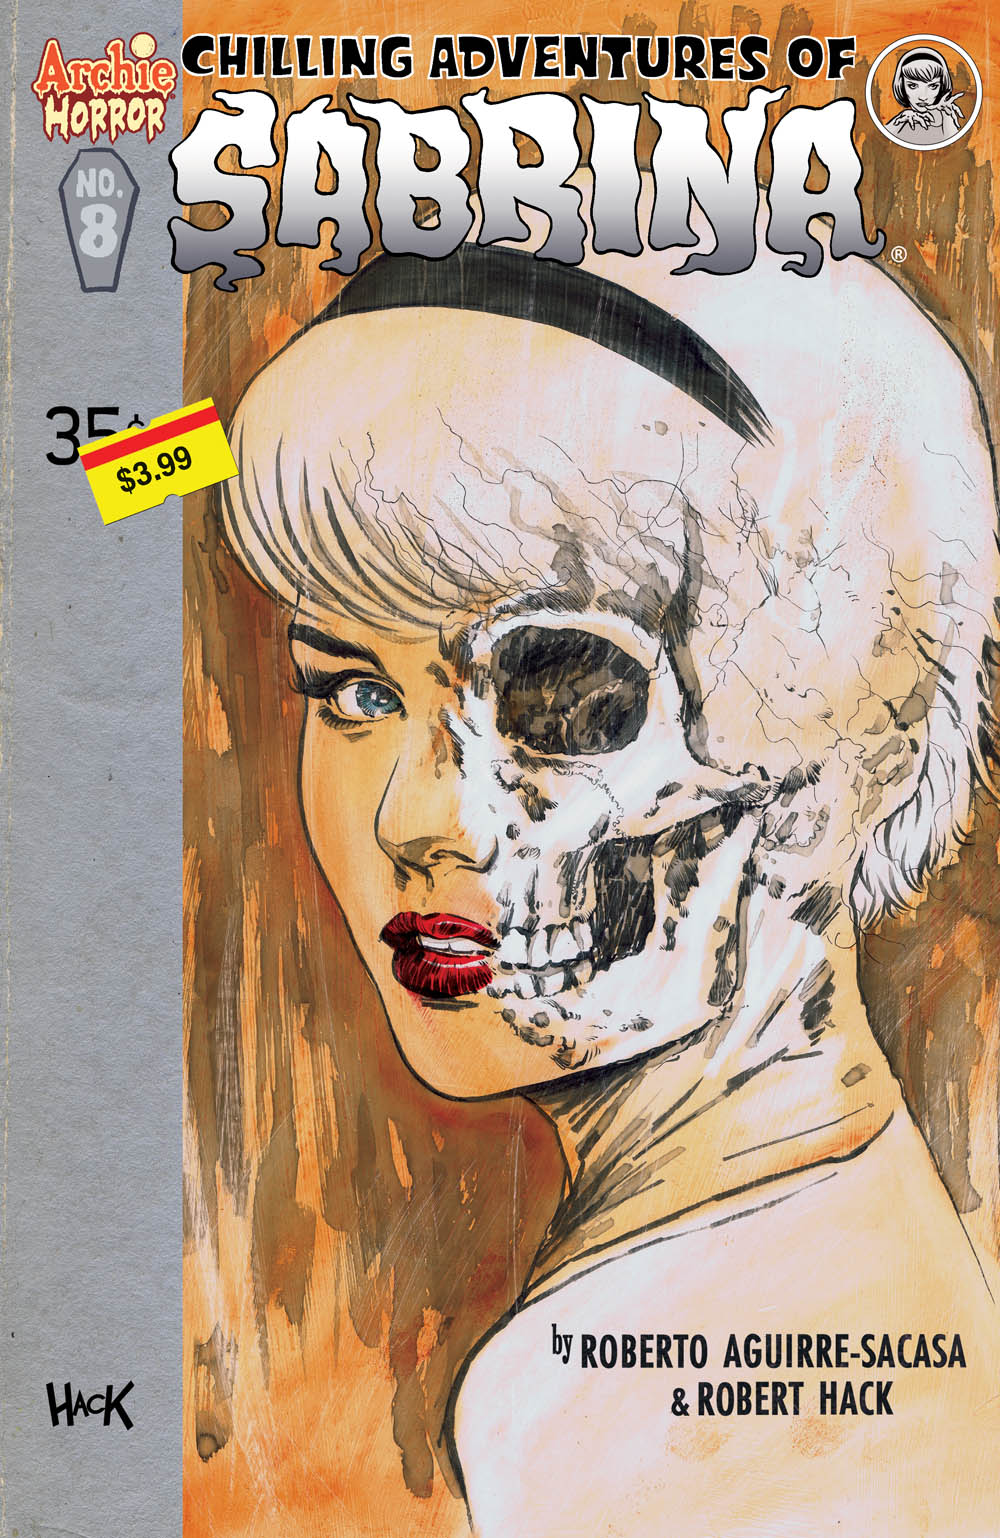 Staff Picks: 'The Chilling Adventures of Sabrina' #8